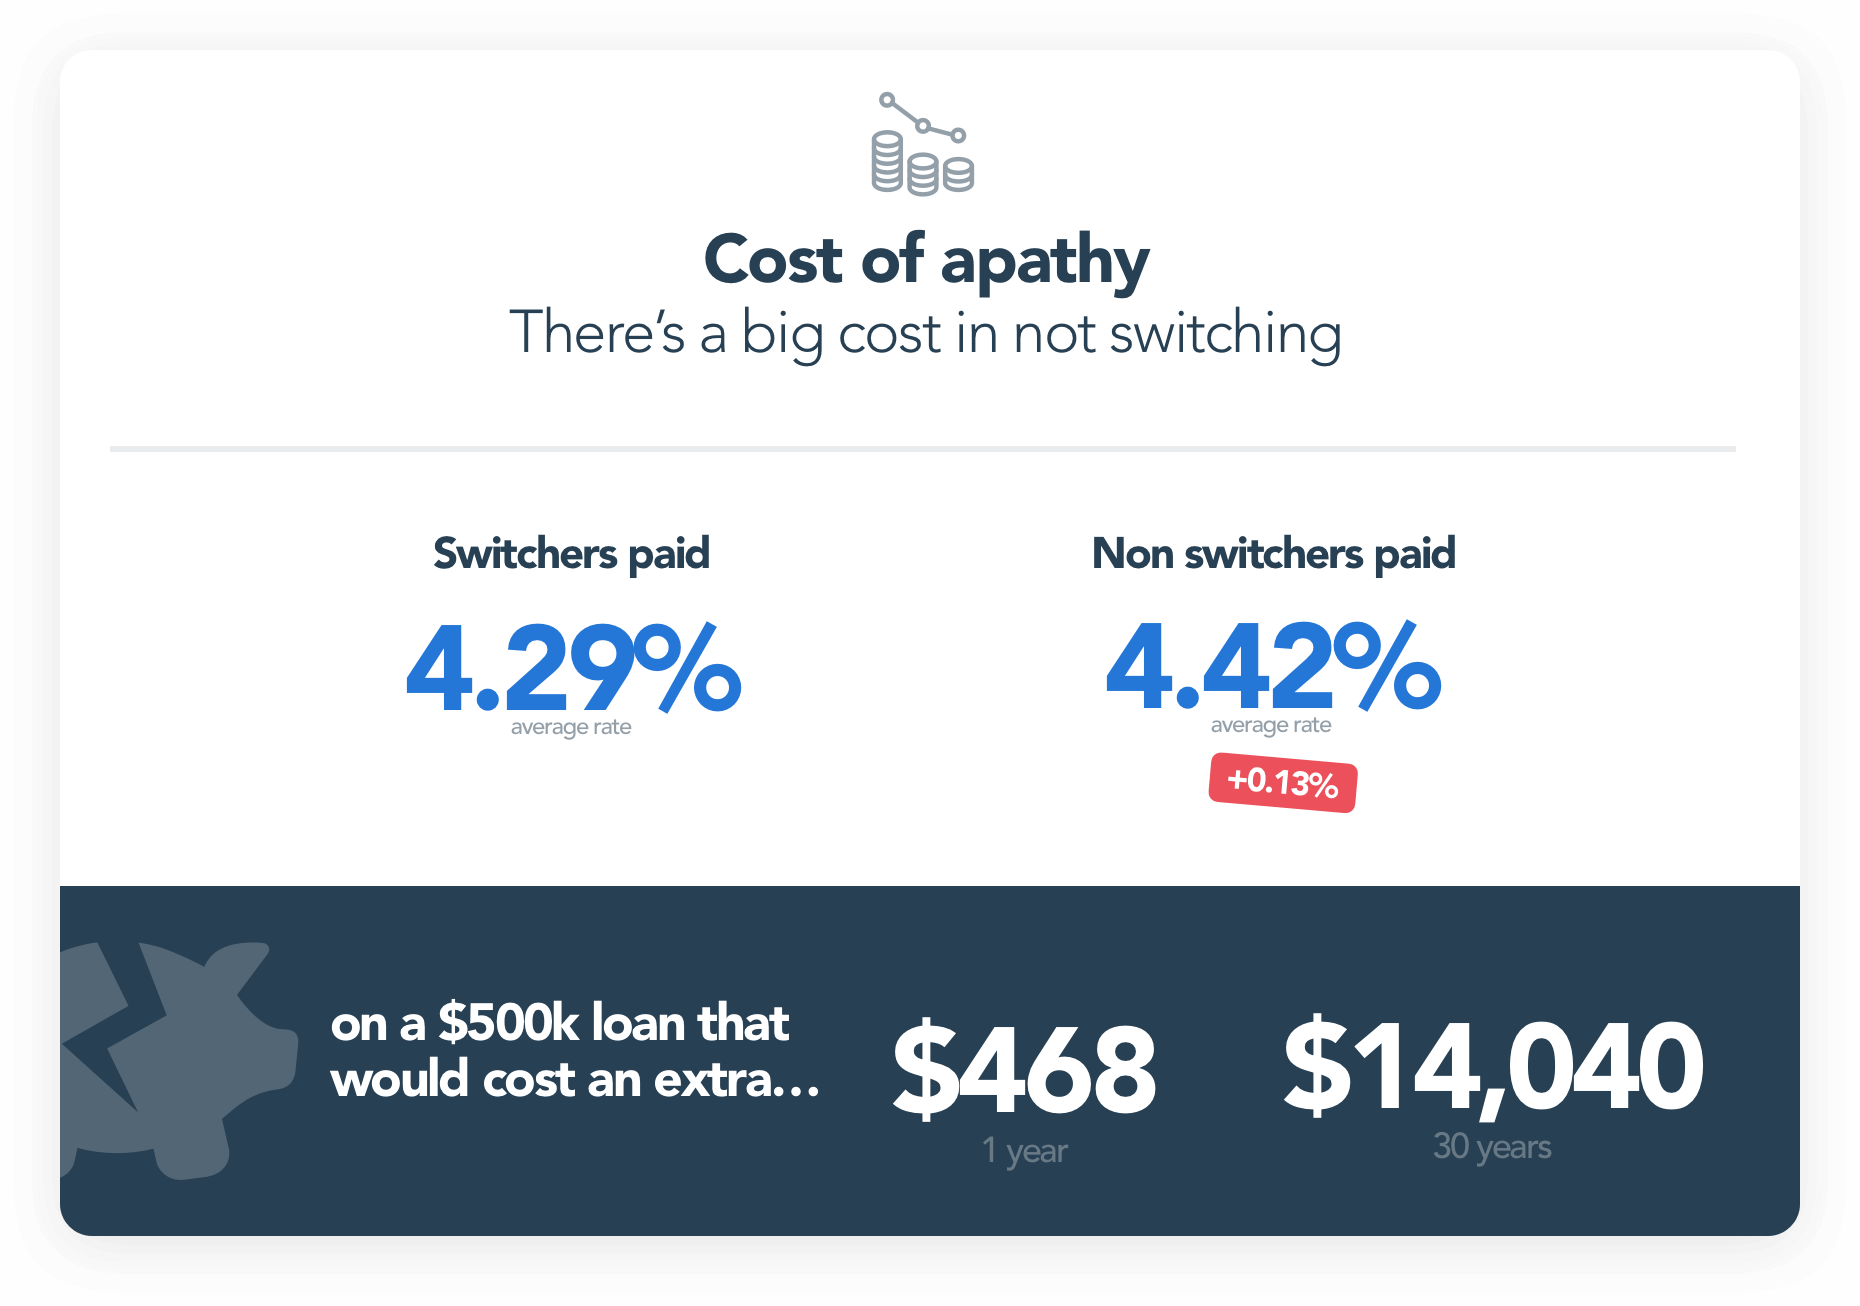 The cost of apathy, there's a big cost in not switching